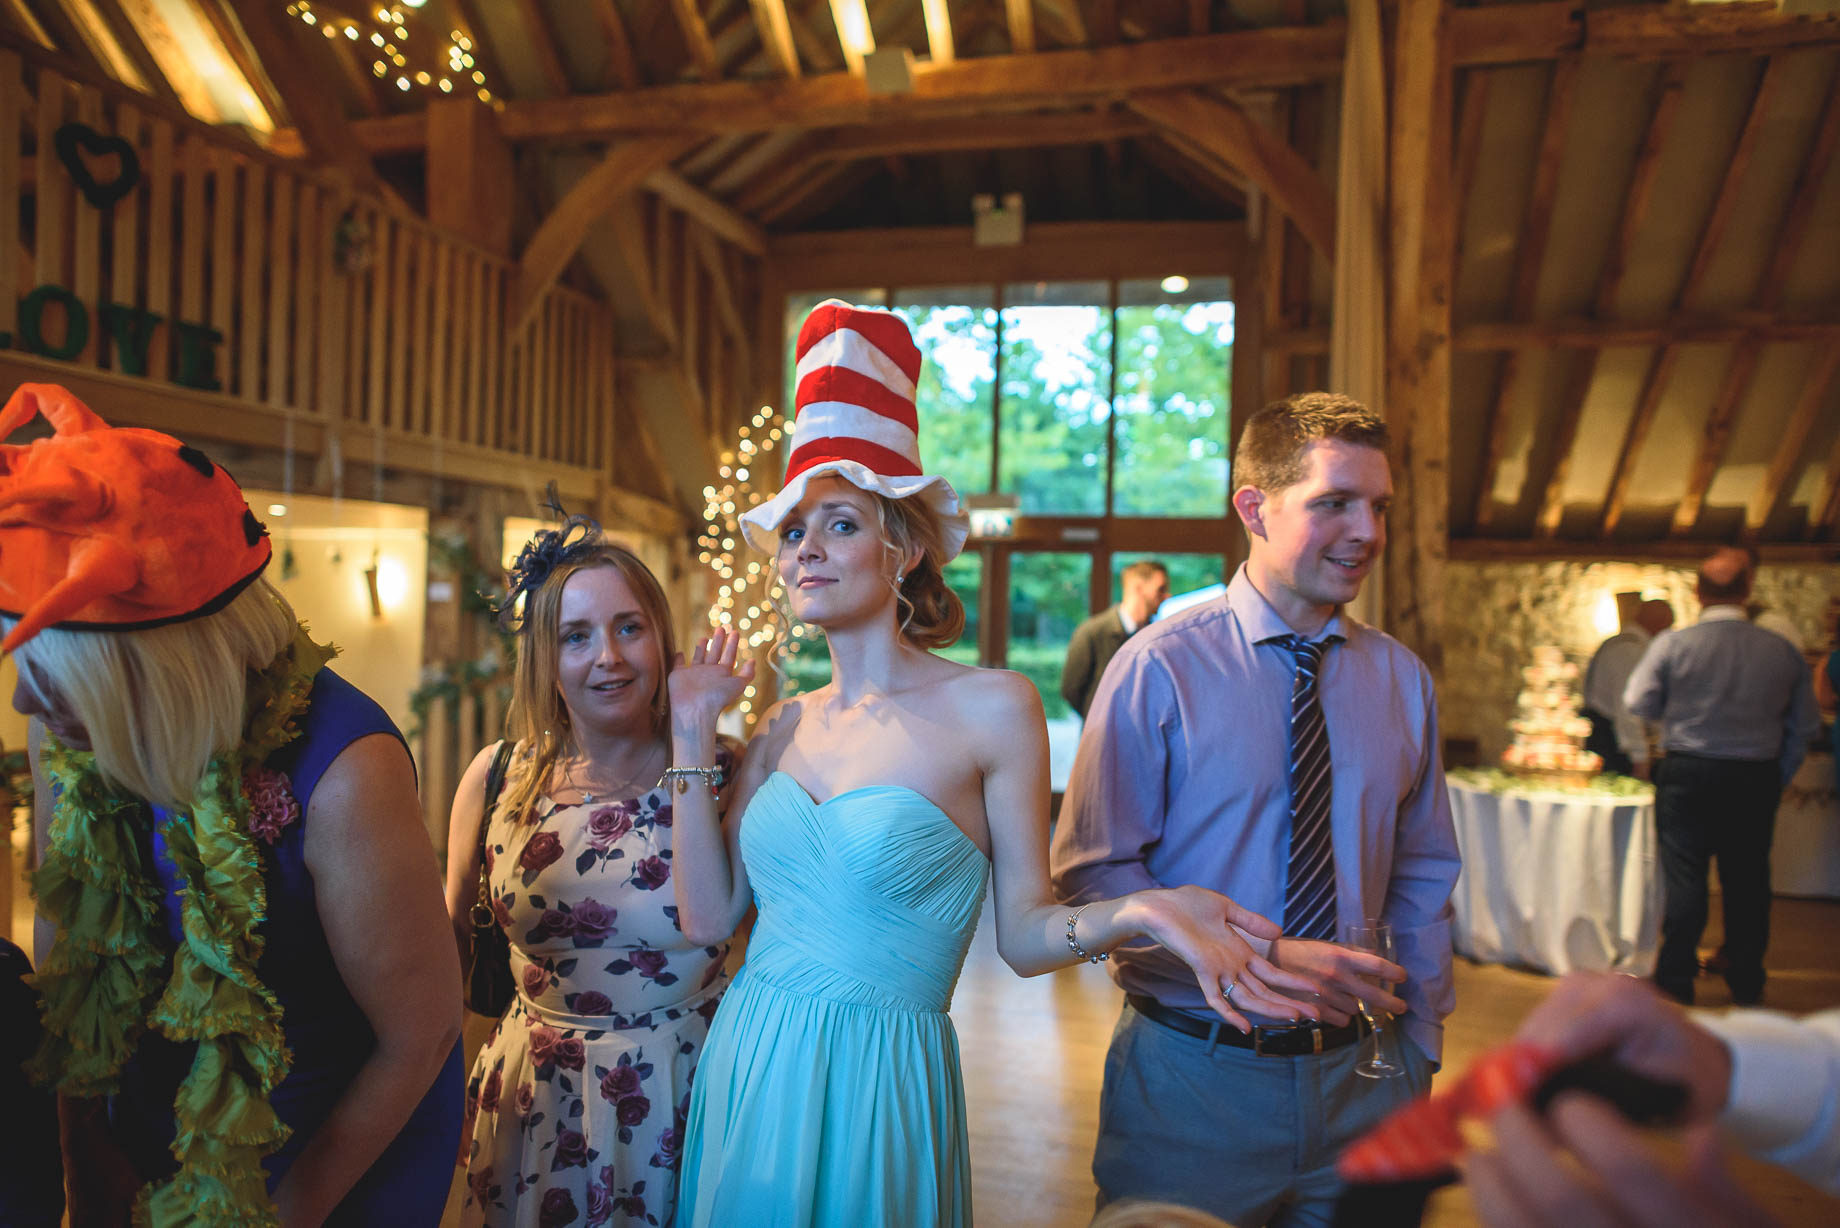 Bury Court Barn wedding photography - Guy Collier - Kate and Russ (161 of 187)